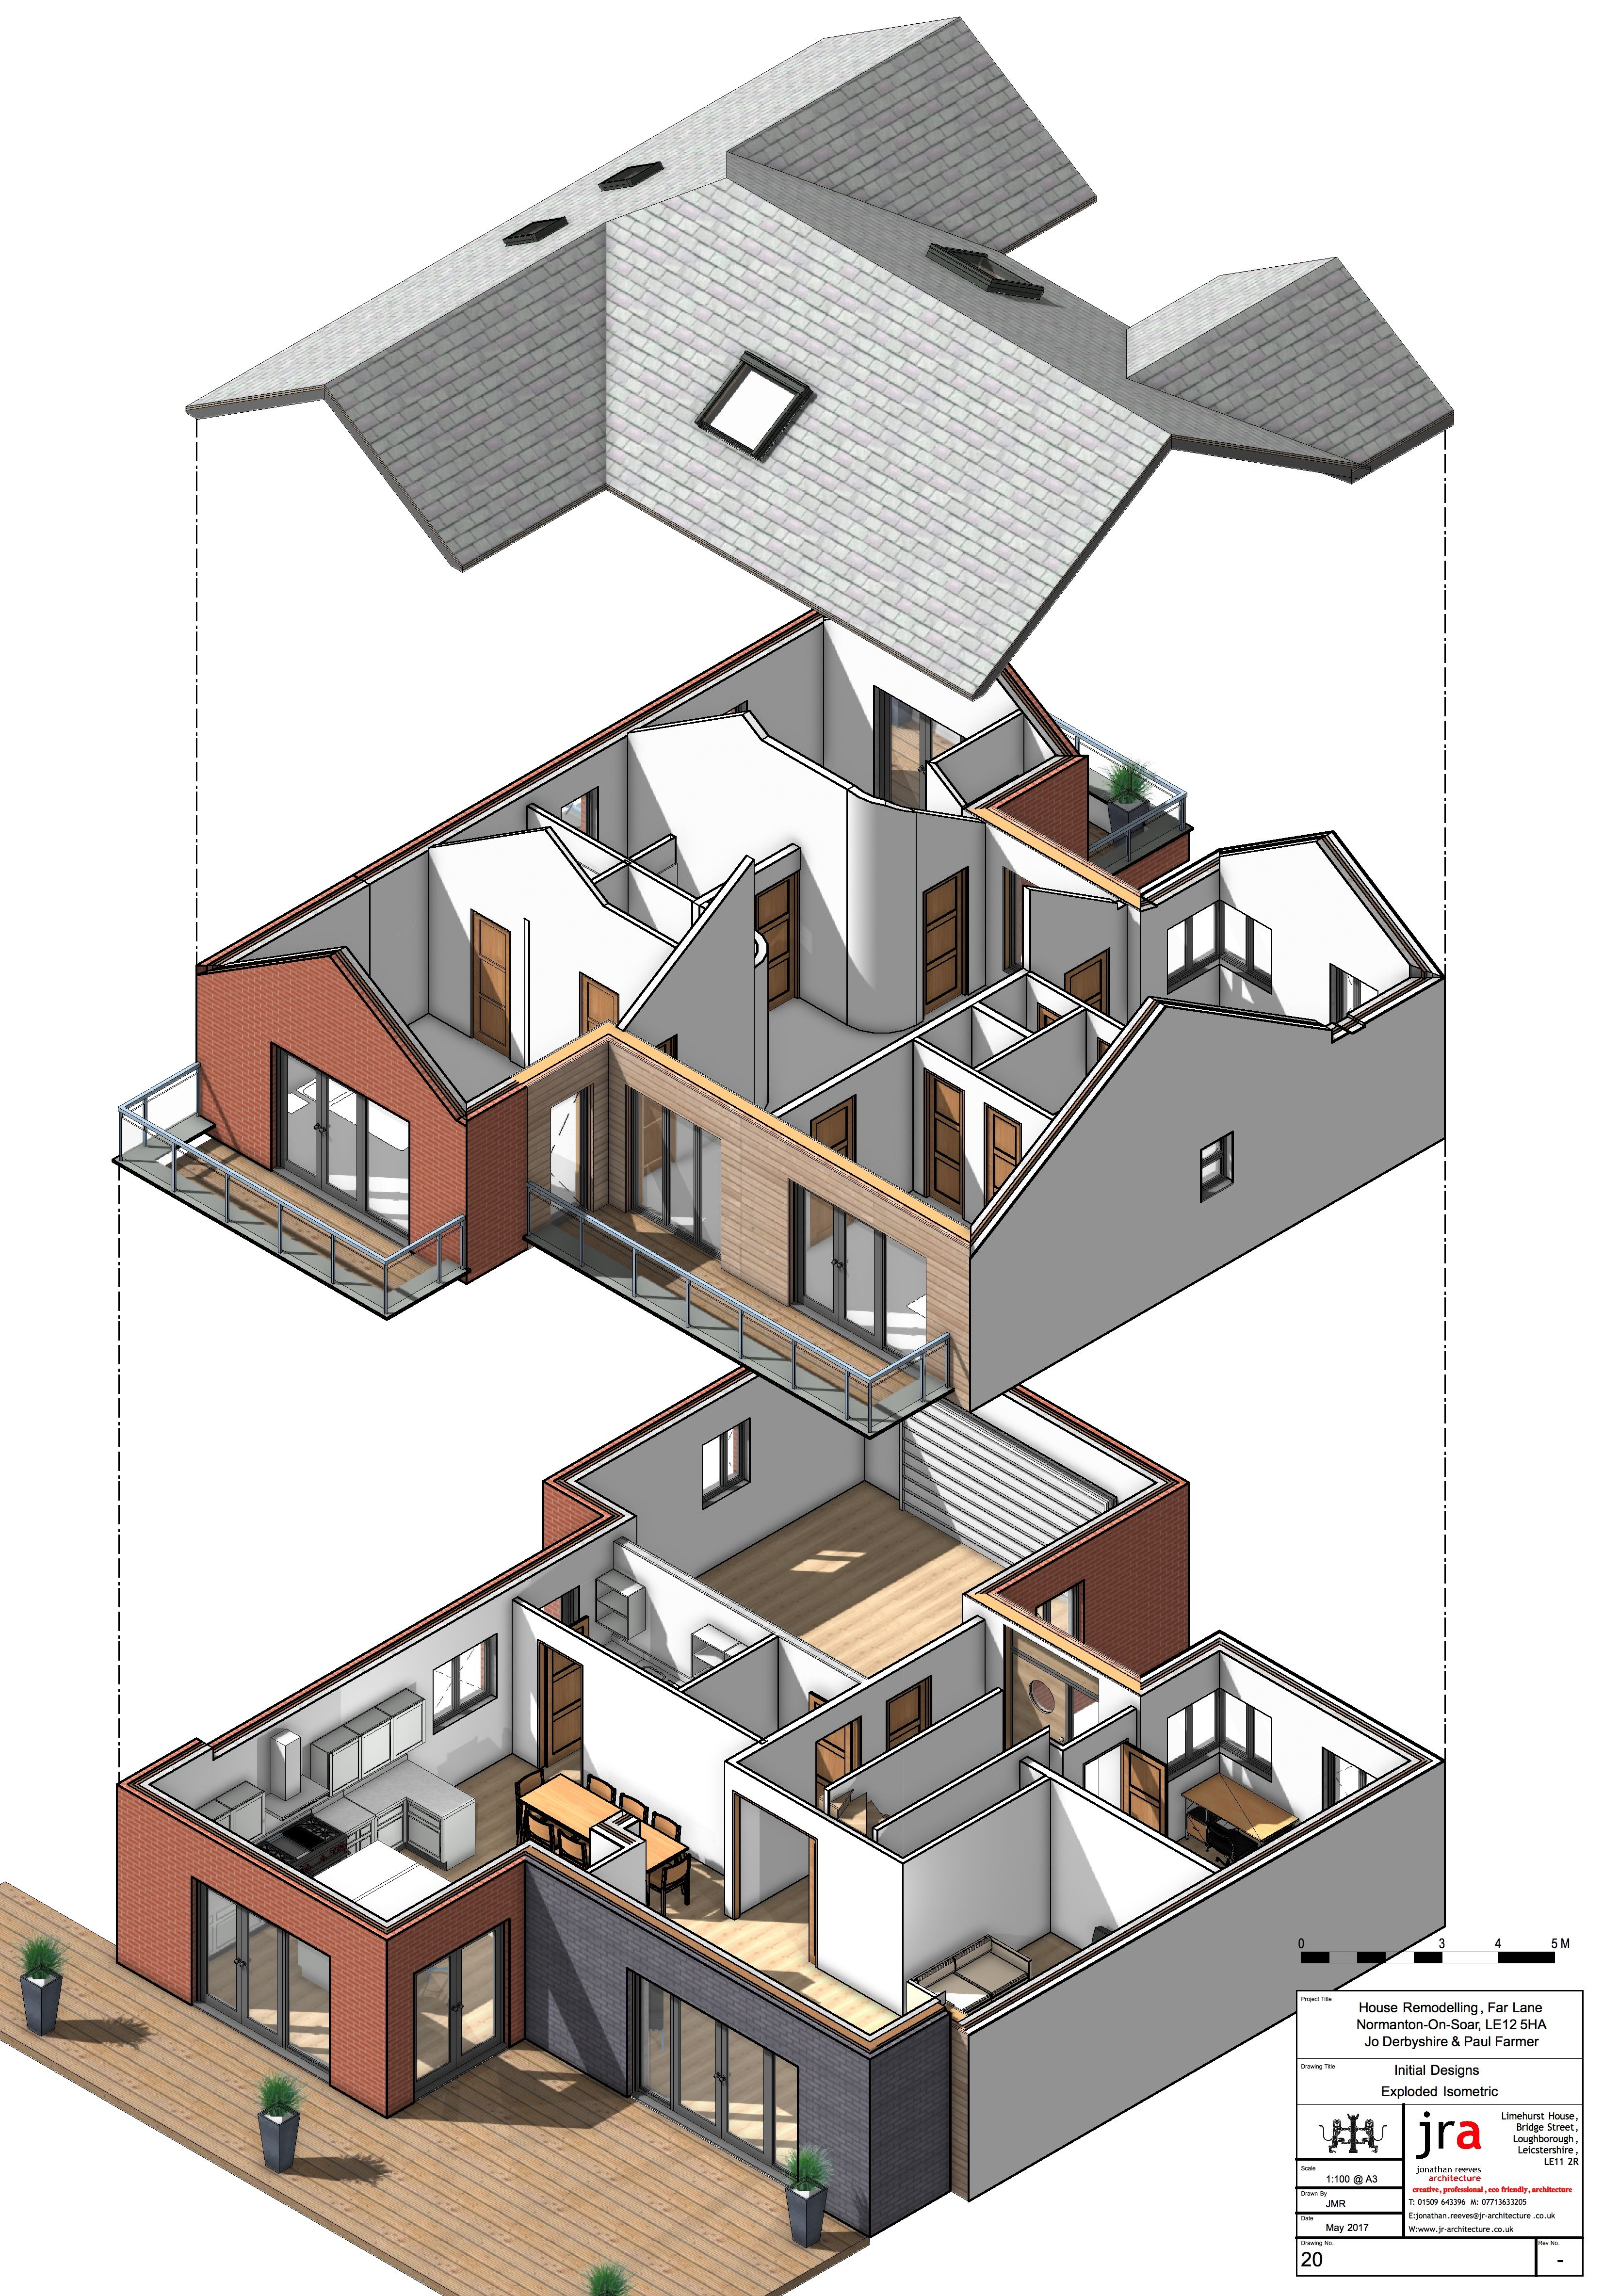 3305x4734 Architect And Vectorworks Bim Guru. We Are The Experts For